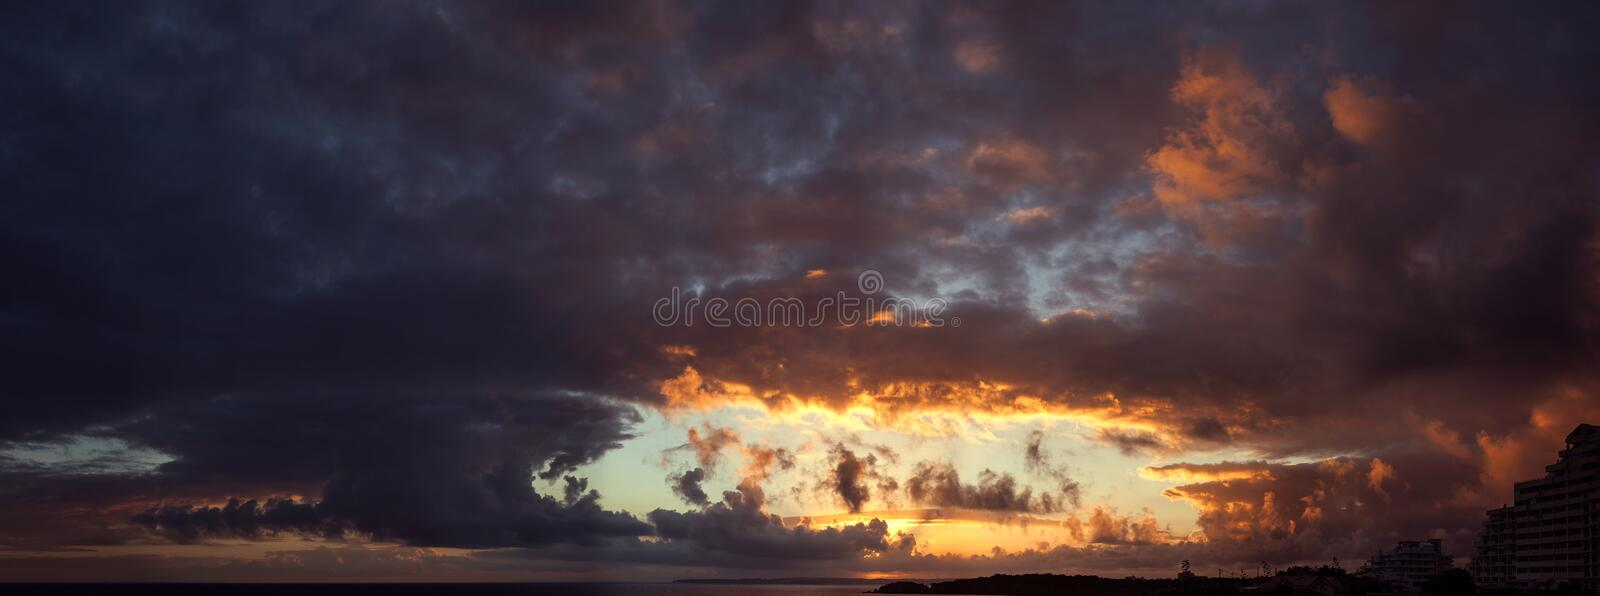 Sunset over the atlantic ocean royalty free stock photo